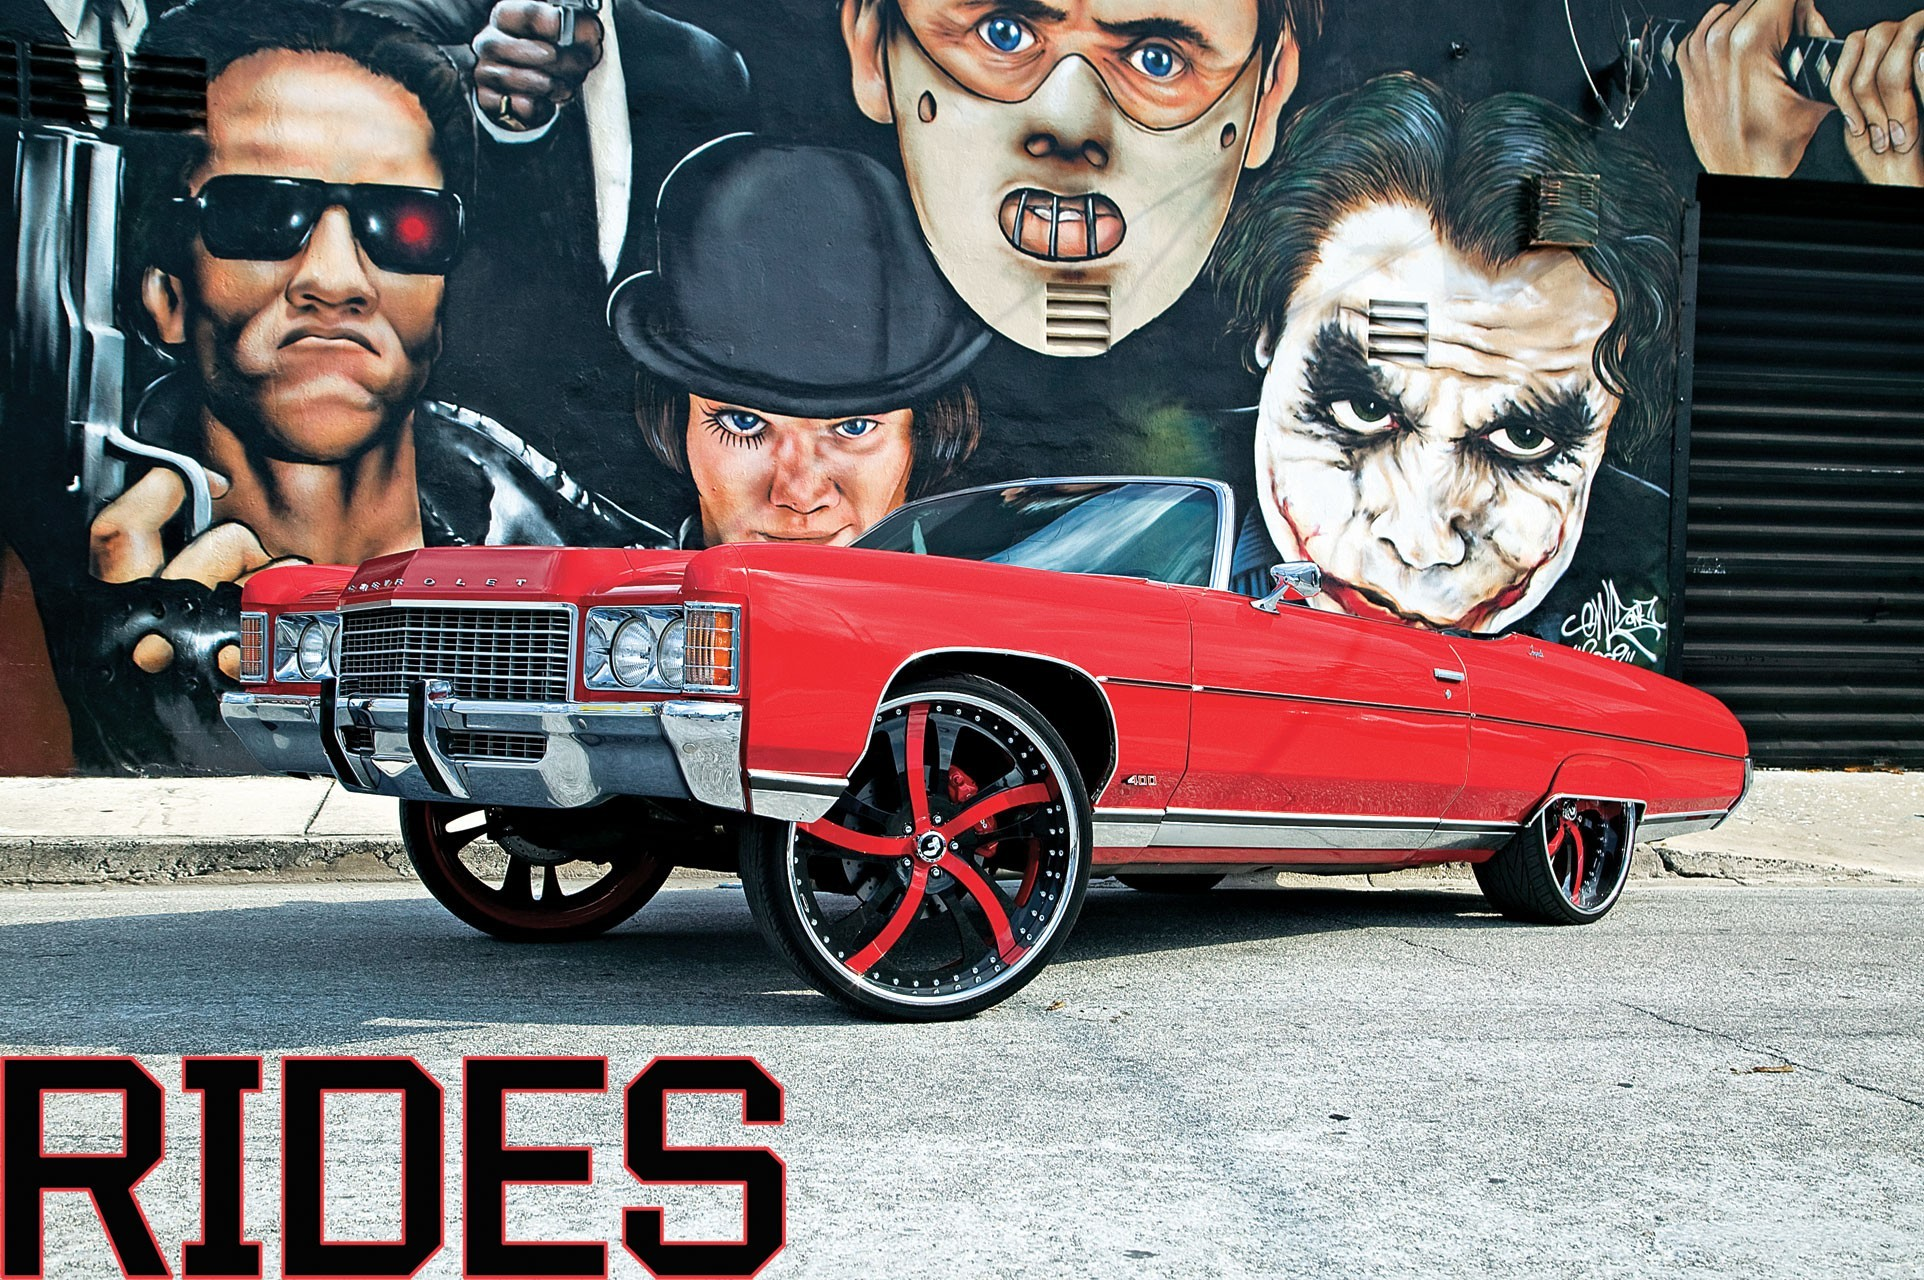 terminator graffiti Chevrolet lowriders HD Wallpaper